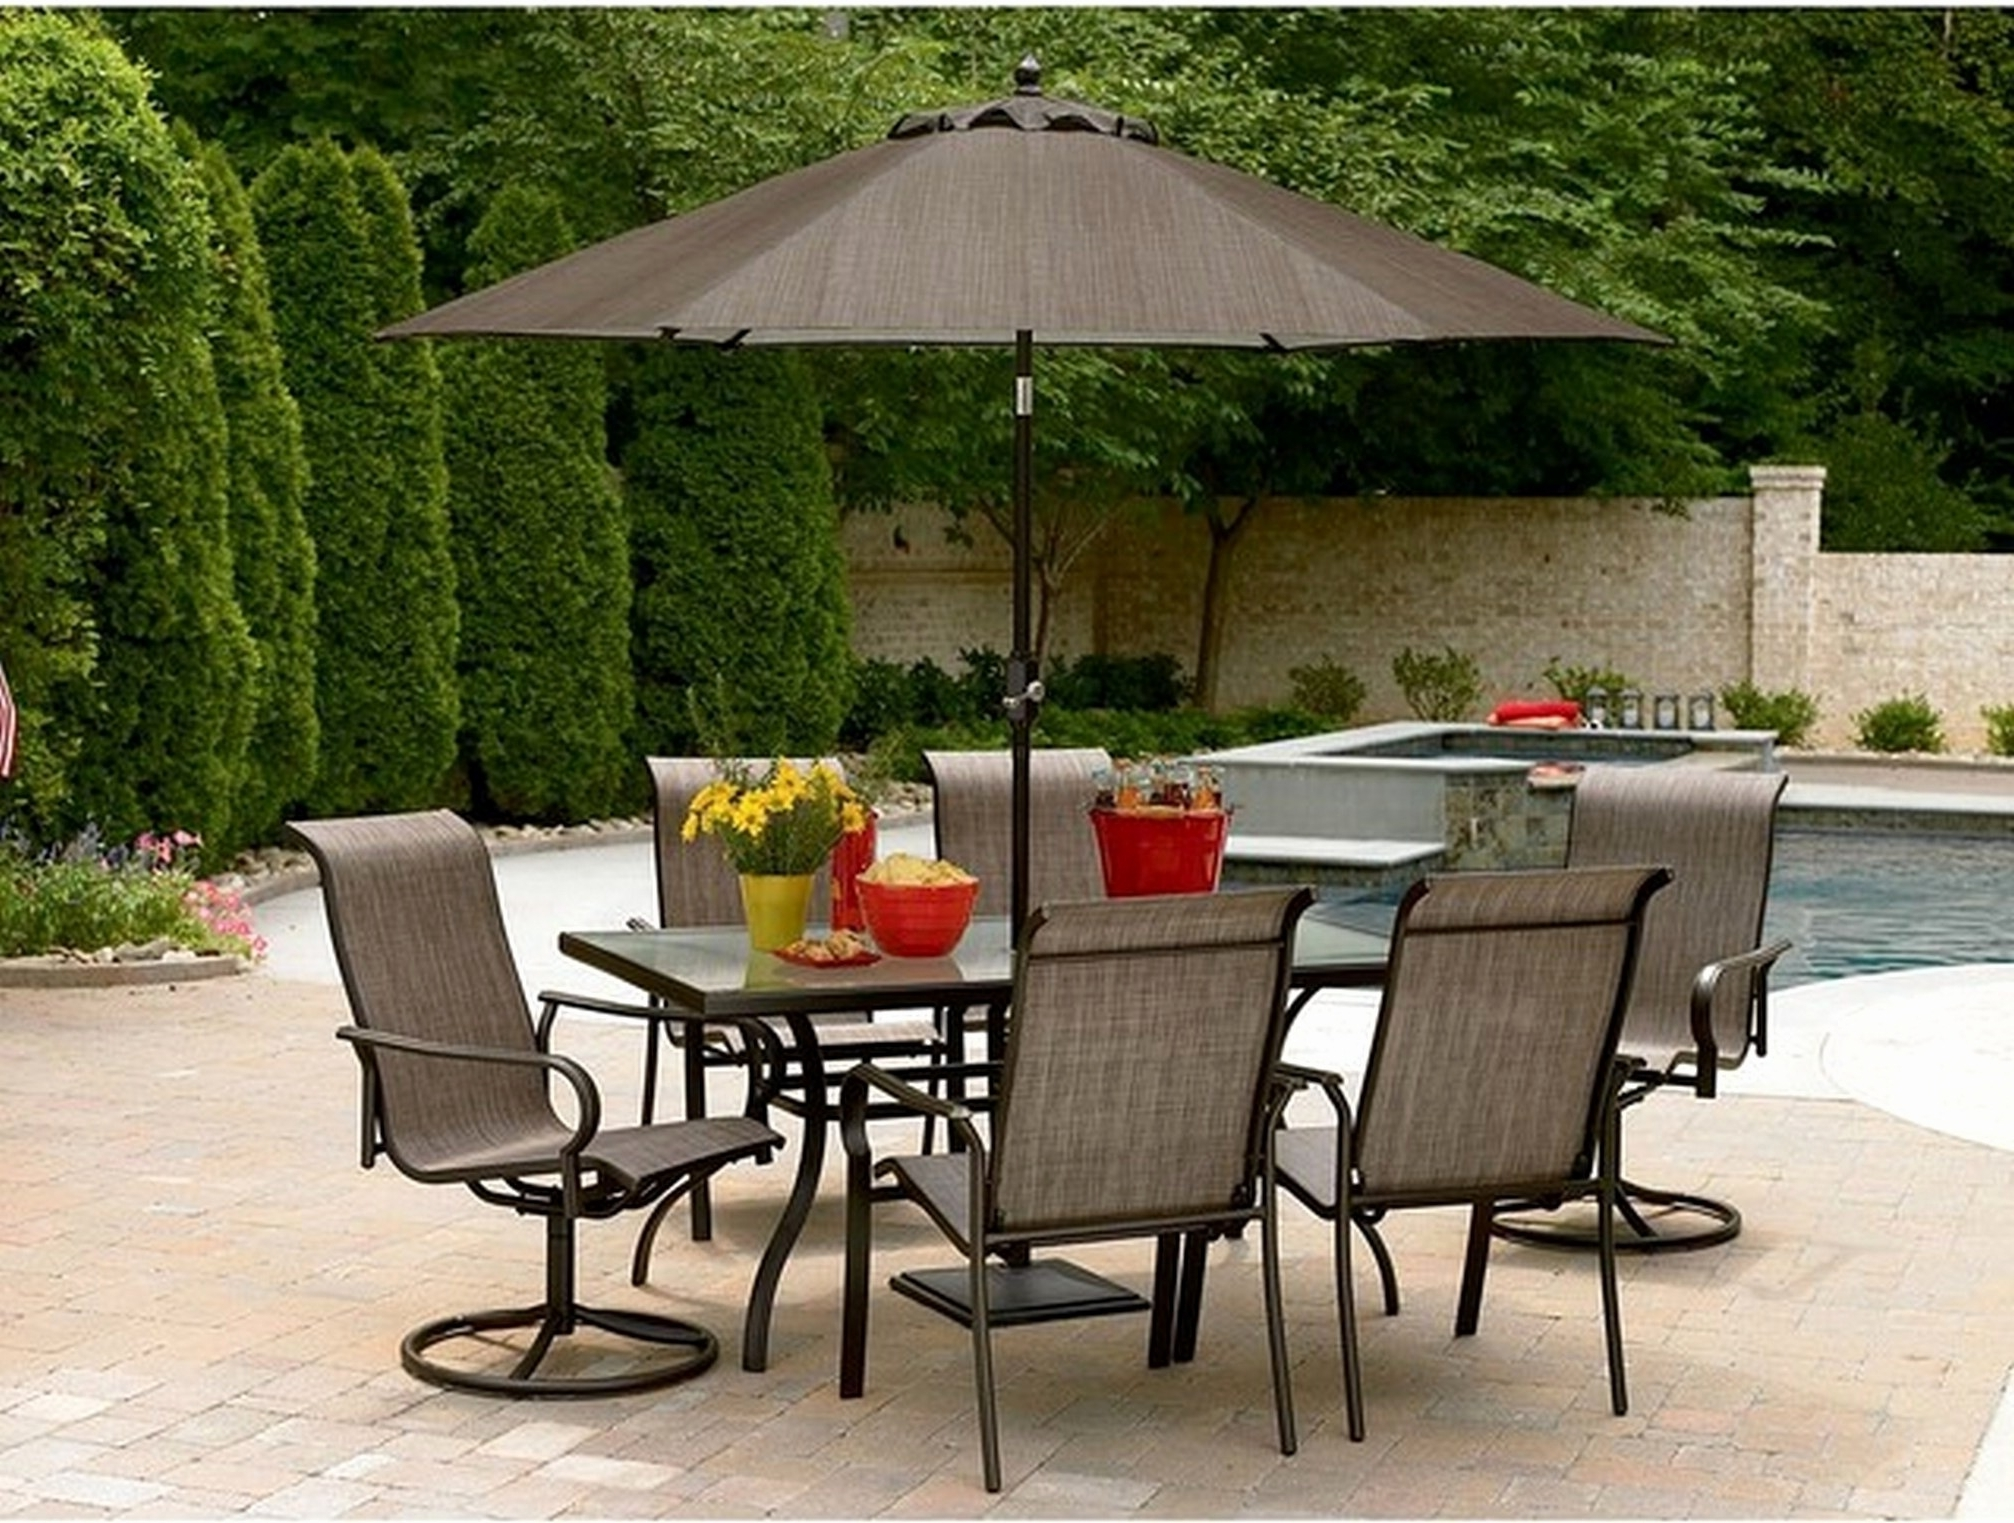 Fashionable Small Patio Tables With Umbrellas Pertaining To Great Small Patio Tables With Umbrellas – Designsolutions Usa (View 4 of 20)